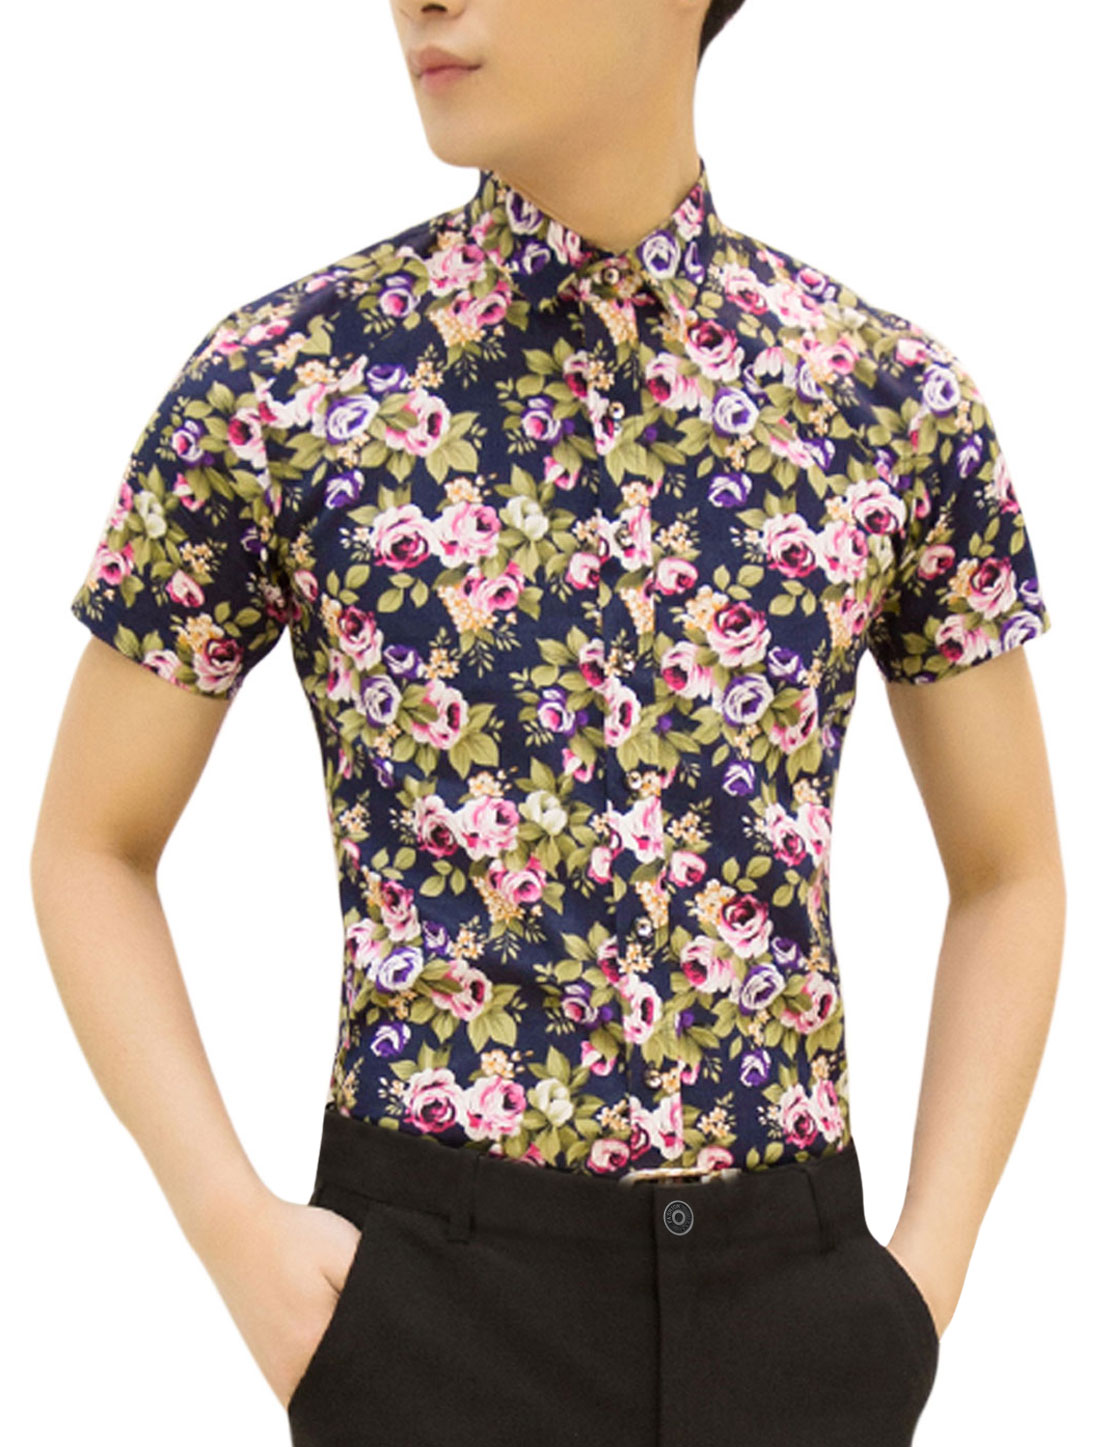 Men Point Collar Flower Prints Casual Shirts Navy Blue Fuchsia M